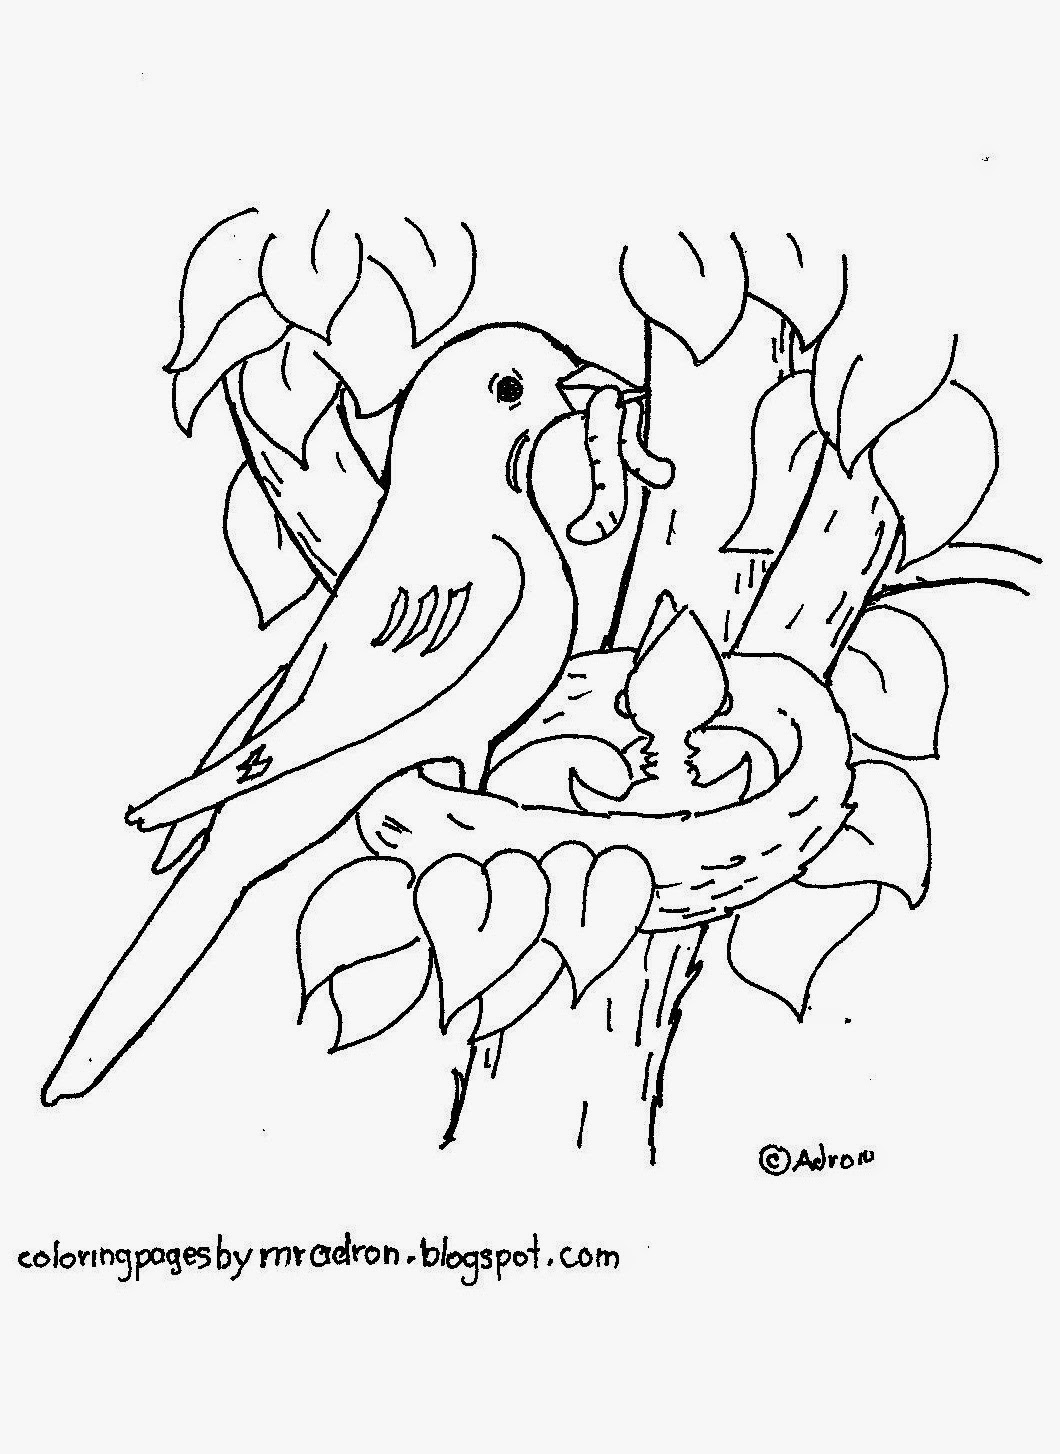 A picture to print and color of a bird.